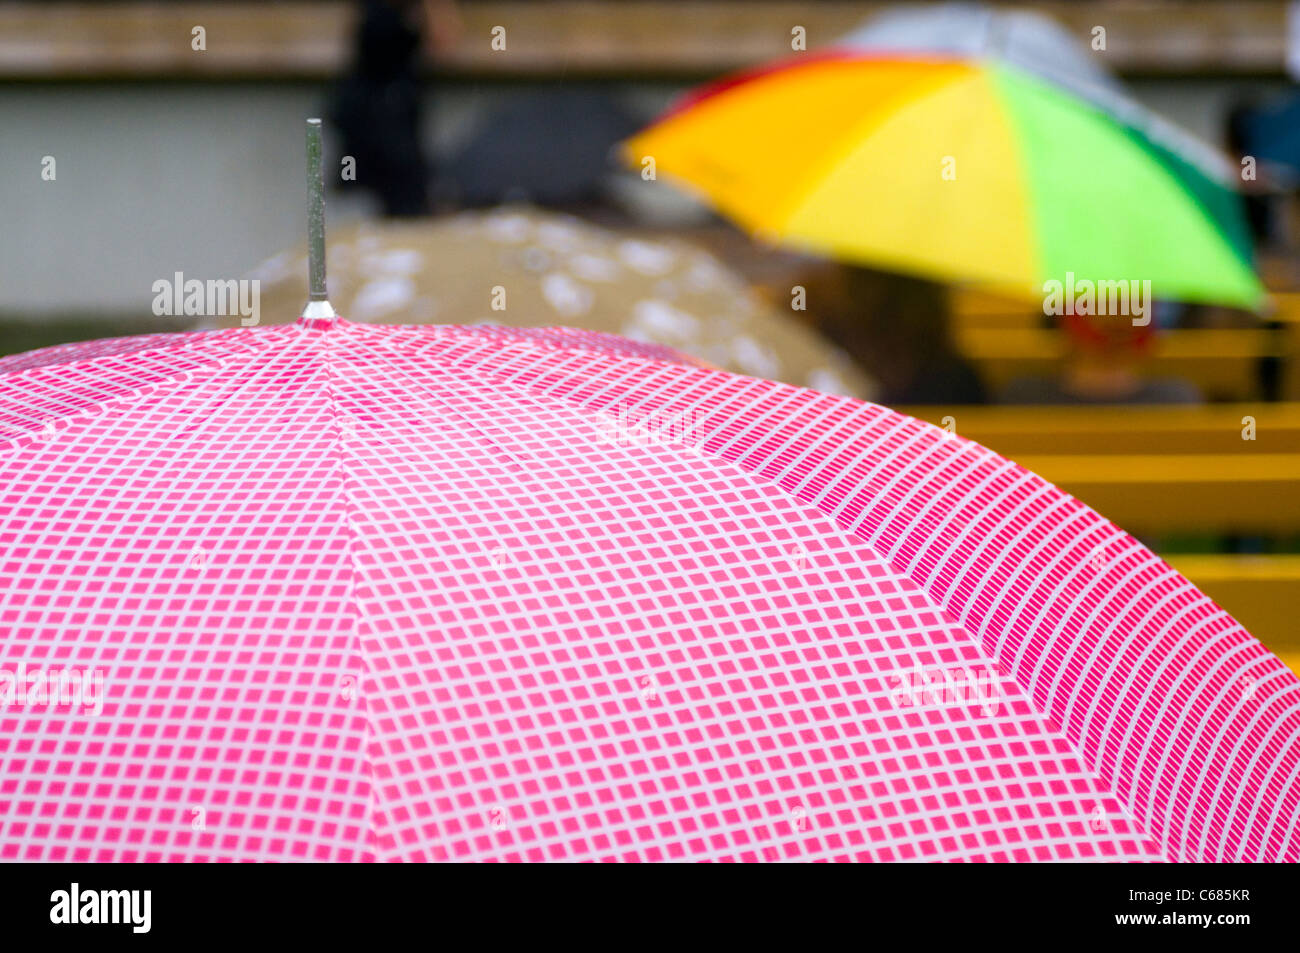 umbrellas umbrella umbrella's rain raining wet weather shower showers damp spitting water summer damp rainy - Stock Image